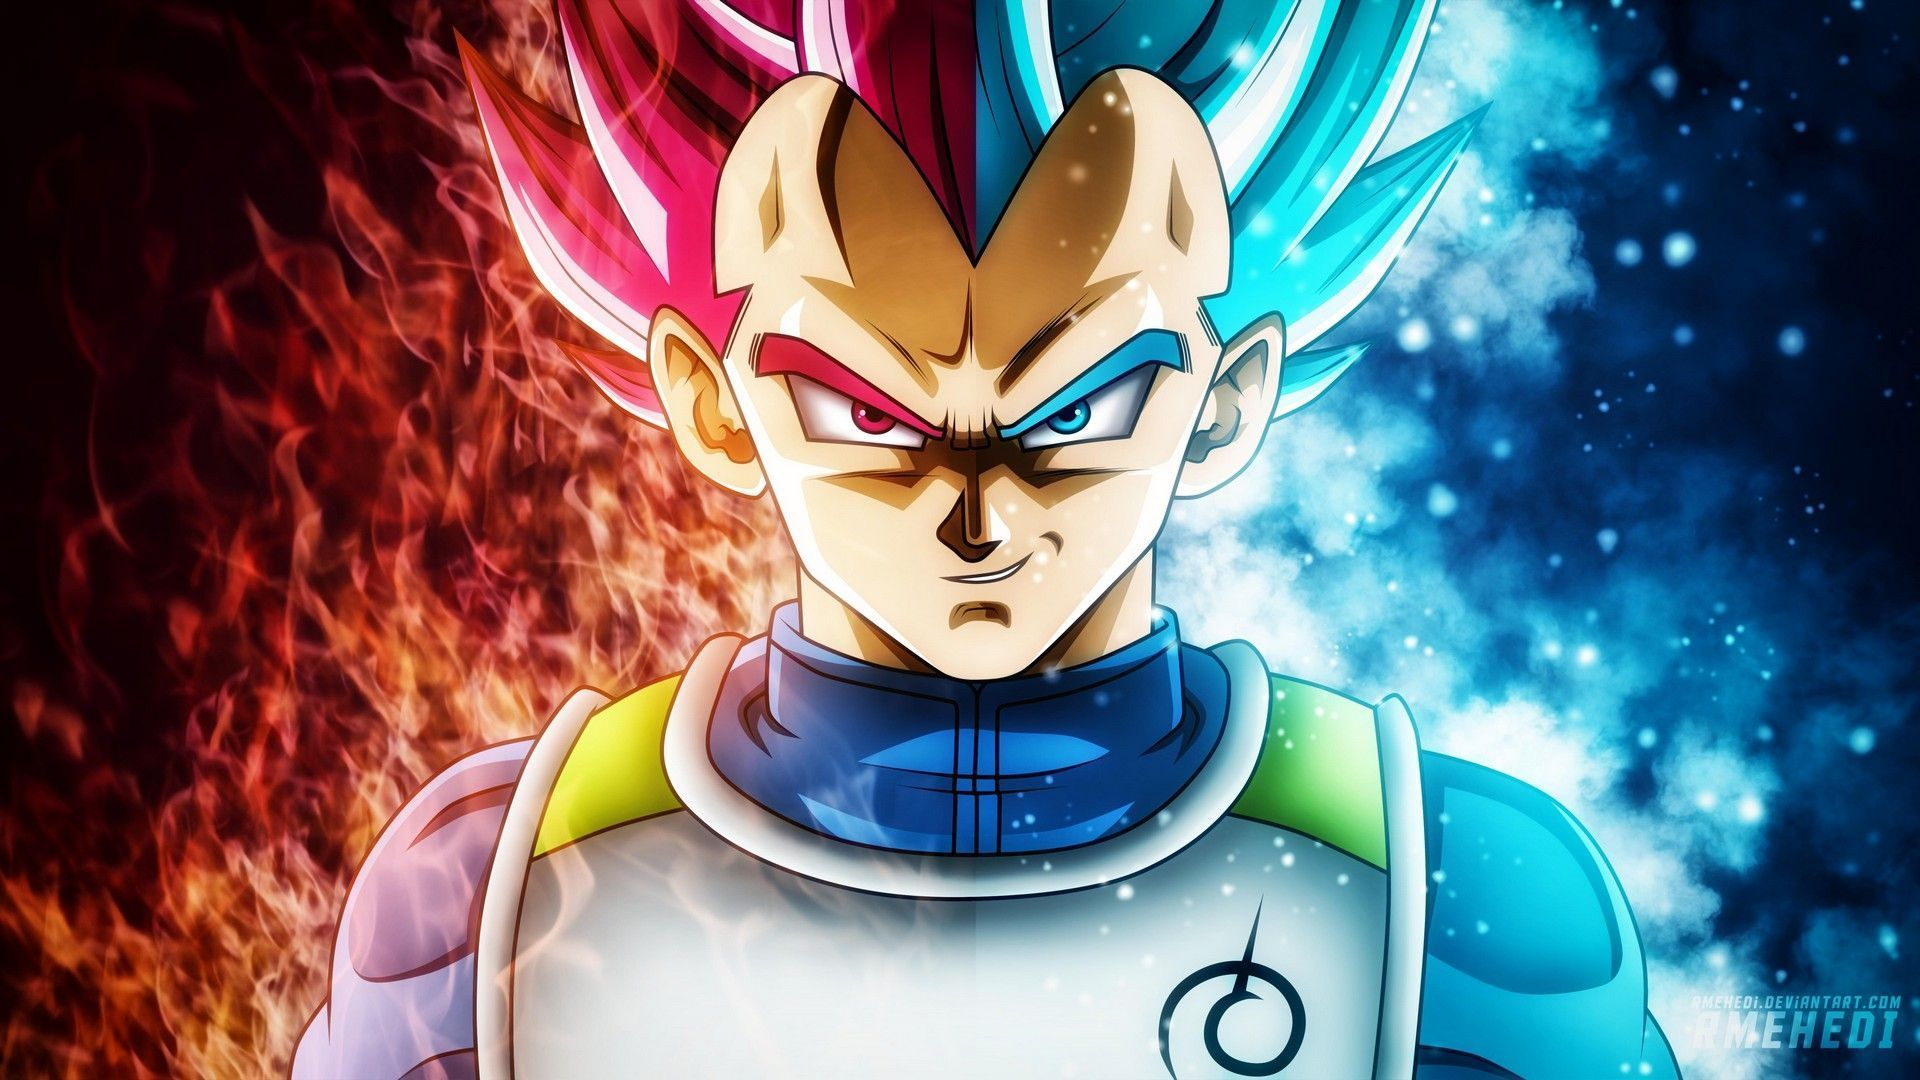 Fondo De Pantalla De 1920x1080 Dragon Ball Super Vegeta 2018 Fondos De Pantalla Hd Fondo D Dragon Ball Super Wallpapers Goku Wallpaper Hd Anime Wallpapers